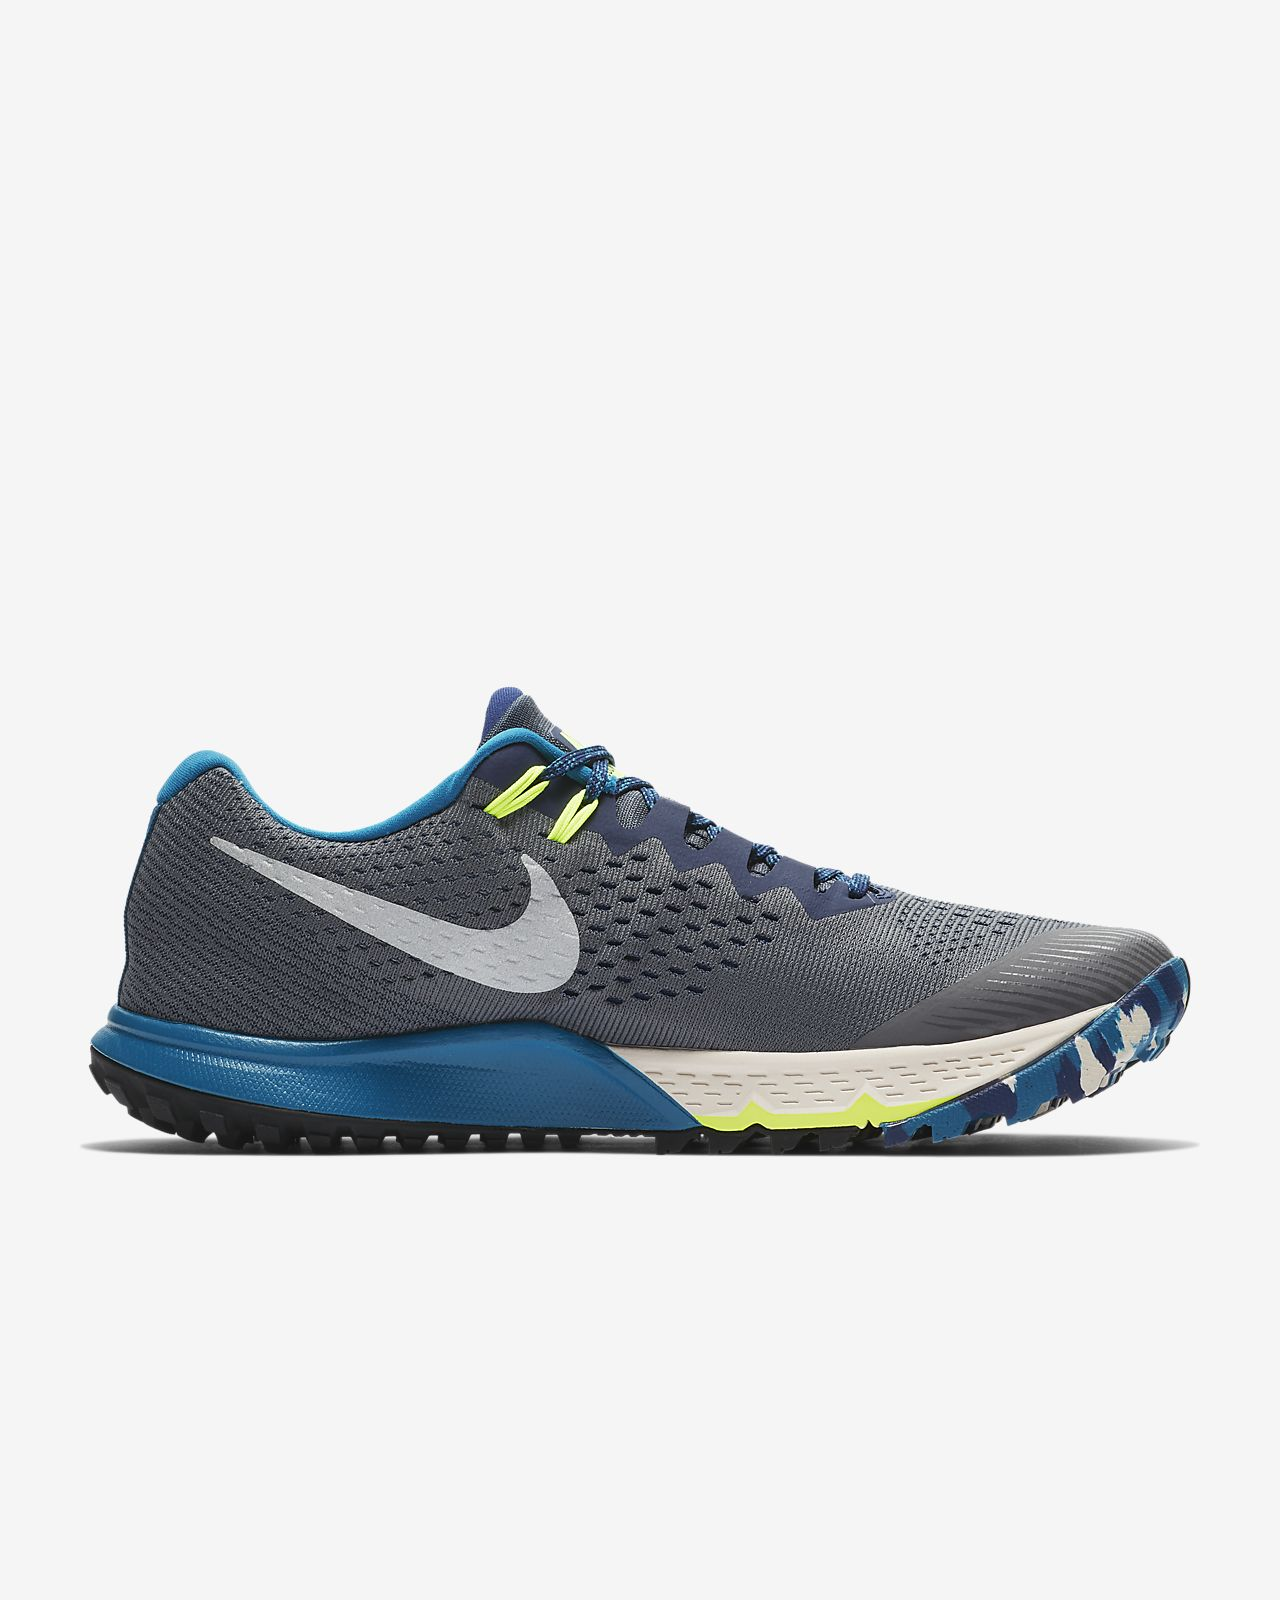 reputable site af518 4bc5d ... Chaussure de running Nike Air Zoom Terra Kiger 4 pour Homme